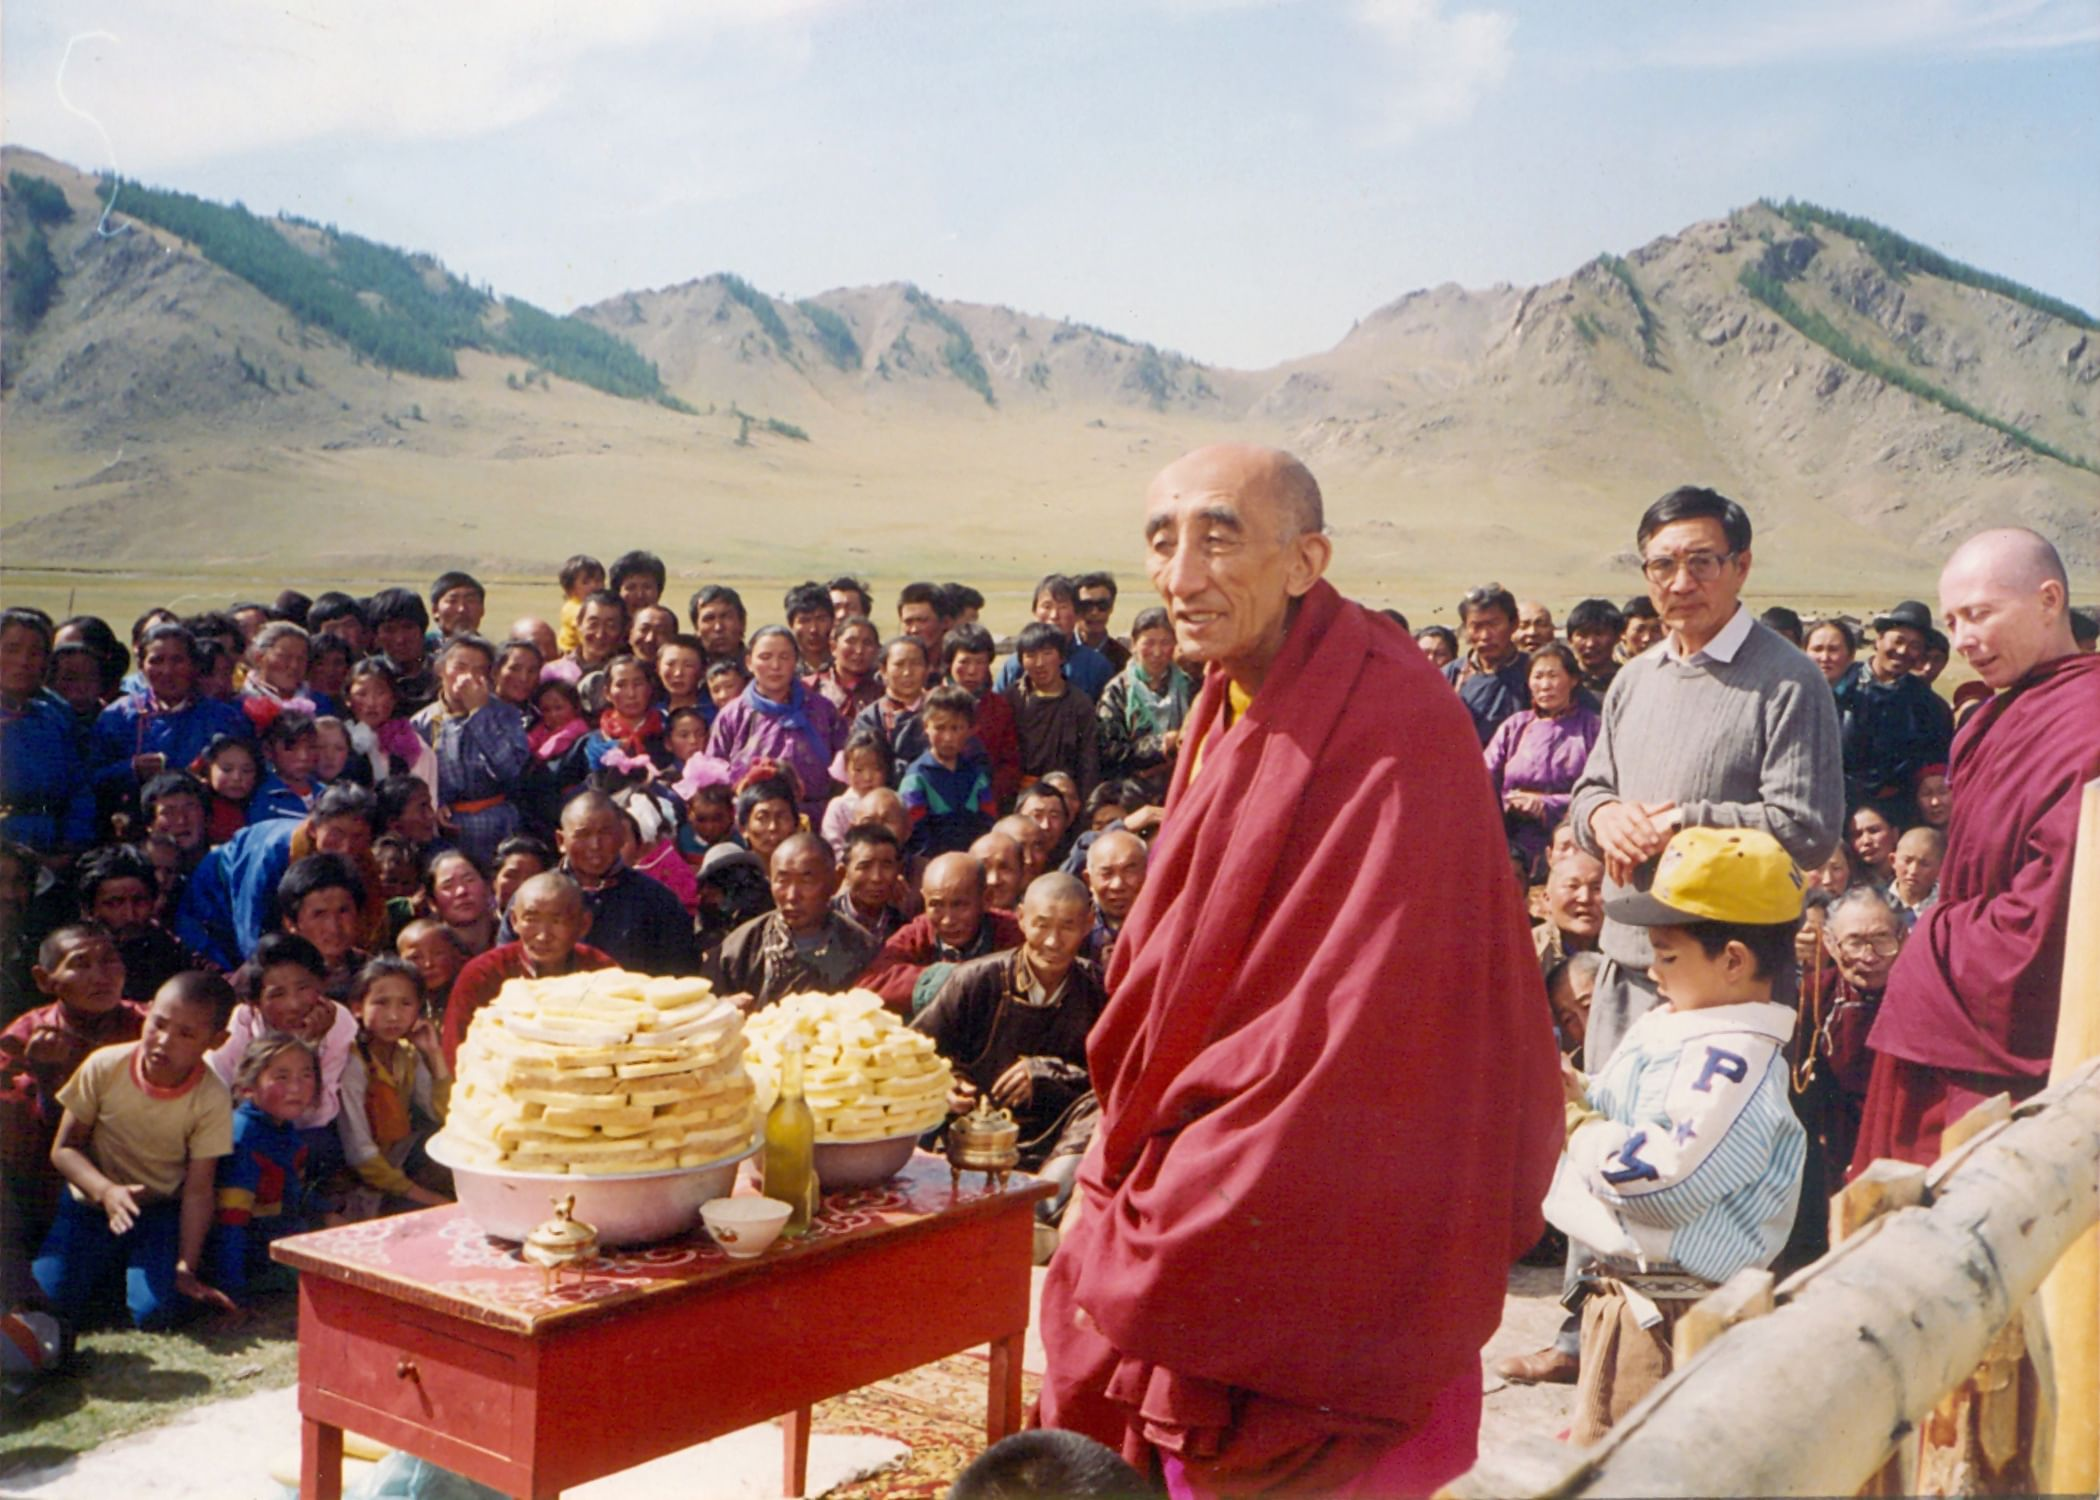 Rinpoche in the Mongolian countryside with his followers. (Source: Sonam Wangchuk)